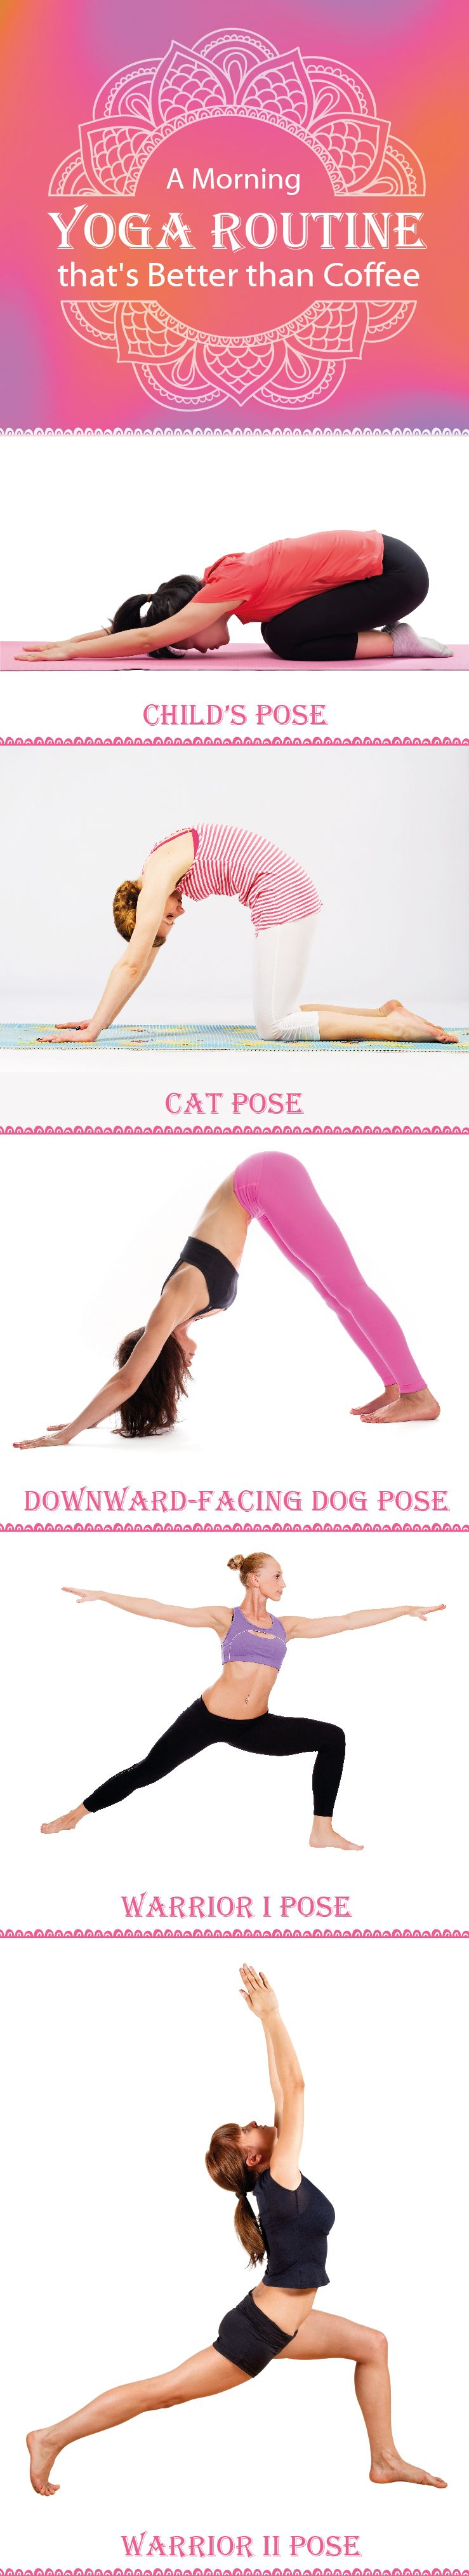 Wake up and face the day with energy and positivity! Our morning yoga routine is...